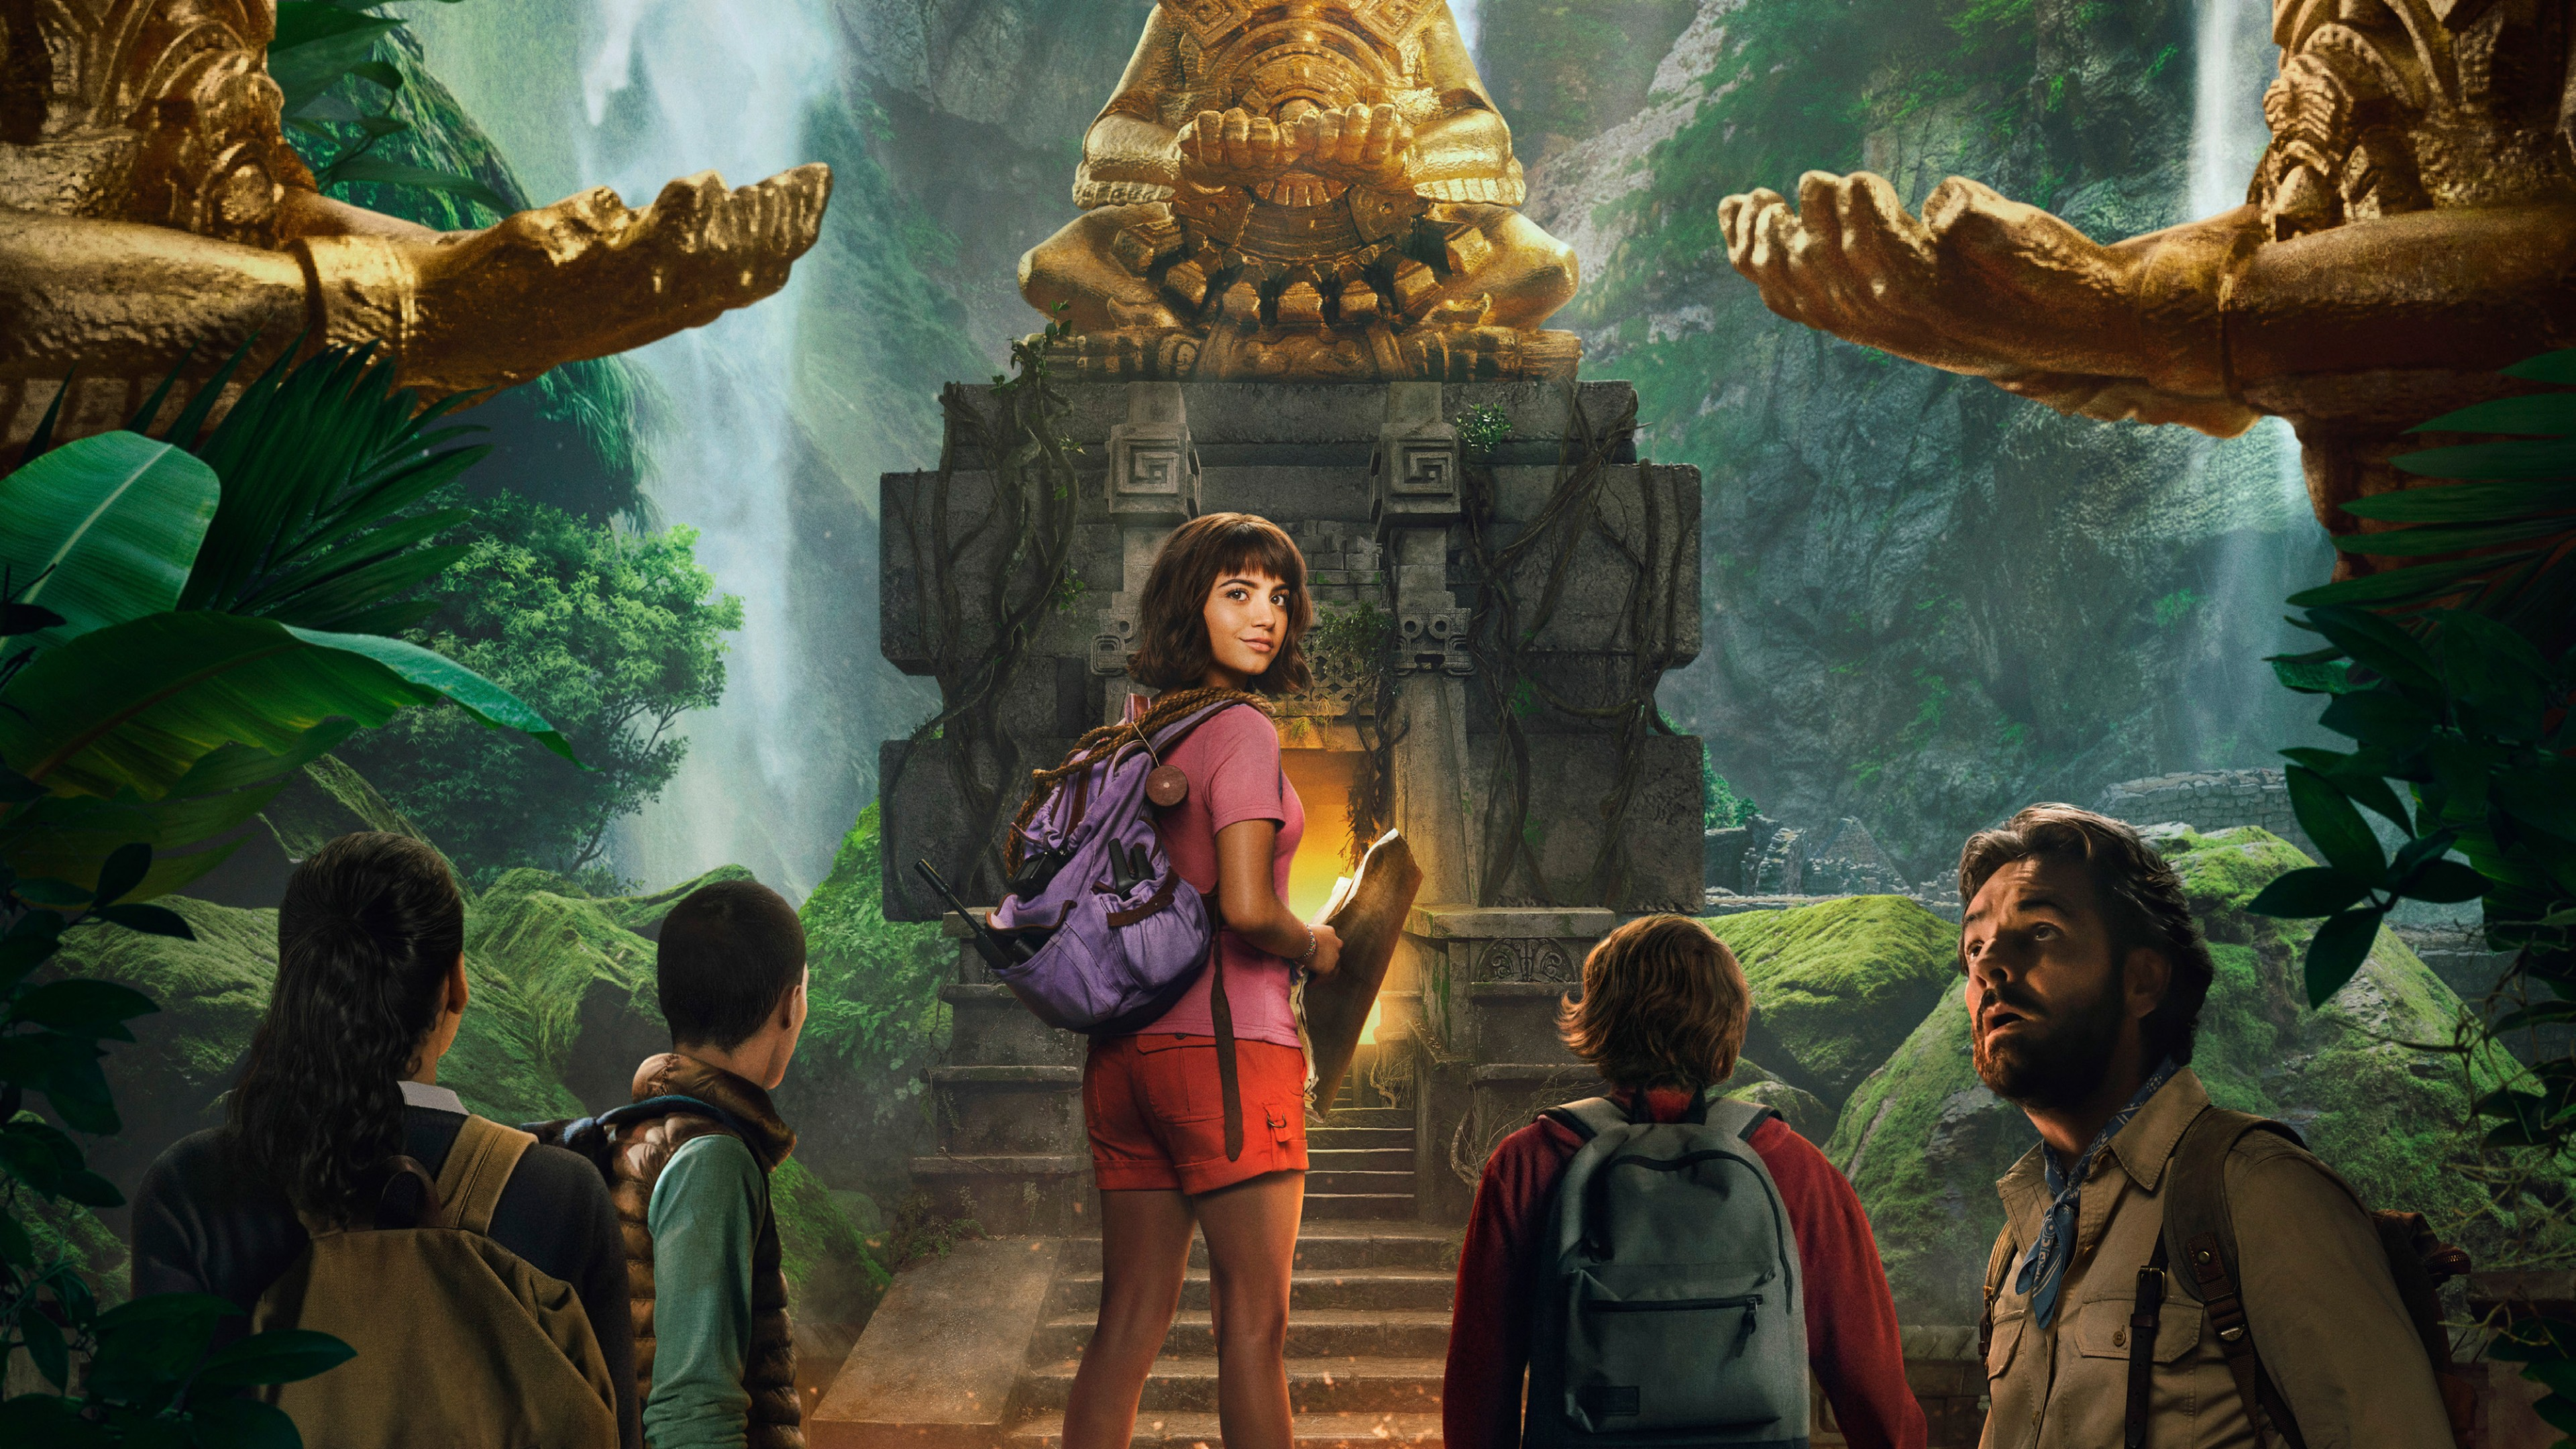 Dora And The Lost City Of Gold 2019 HD Wallpaper 4K